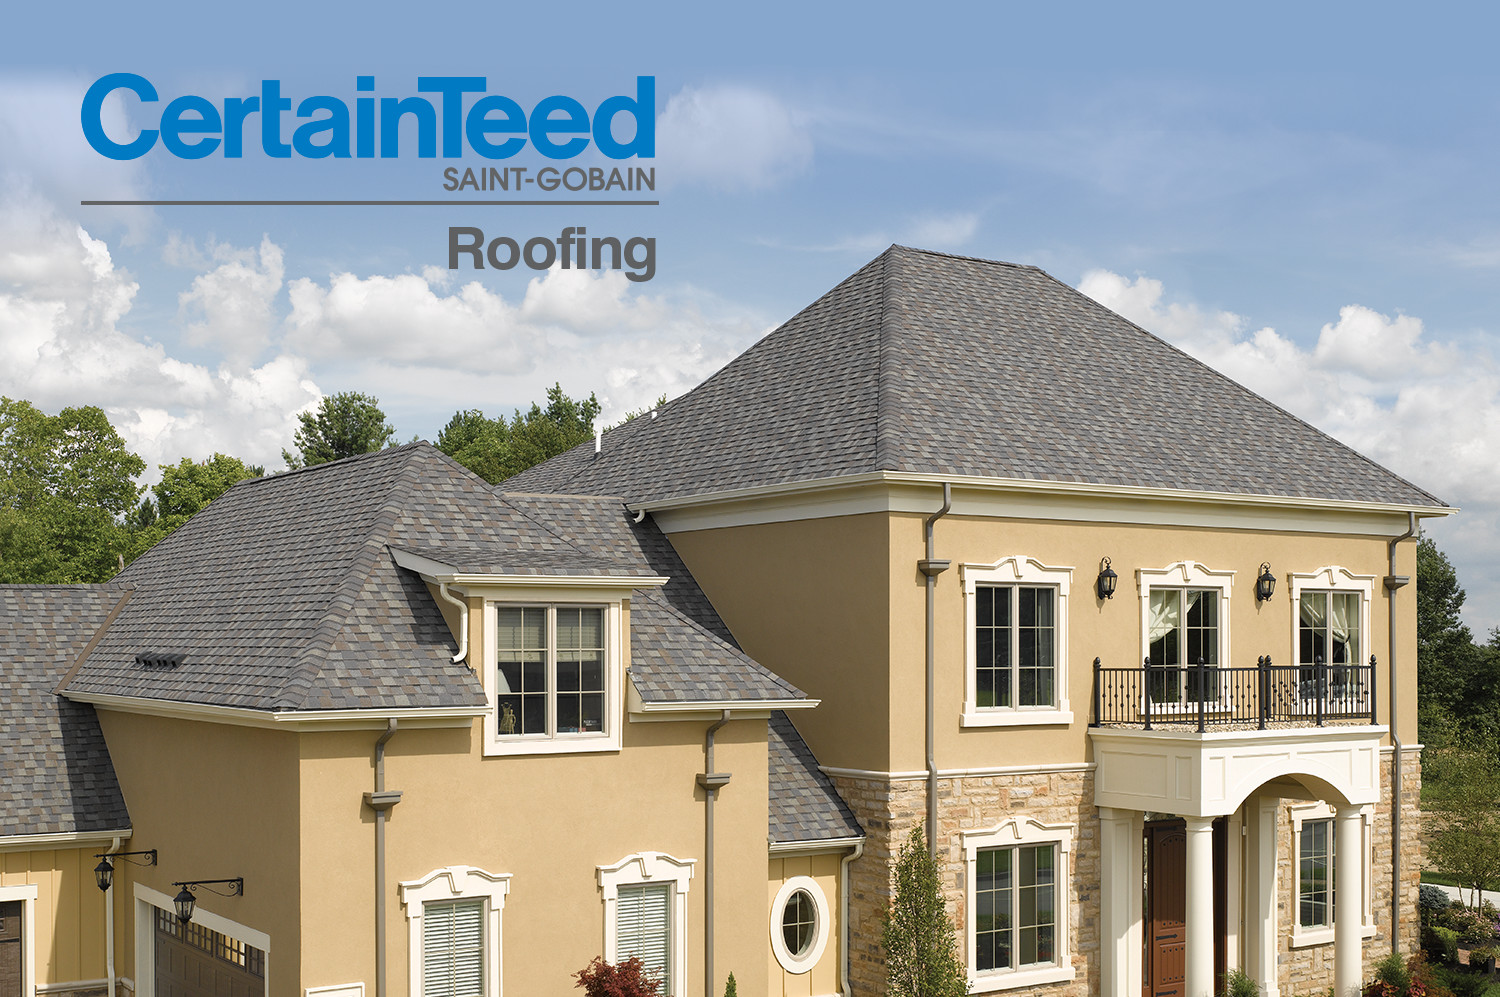 Certainteed Roofing Cleveland Ohio